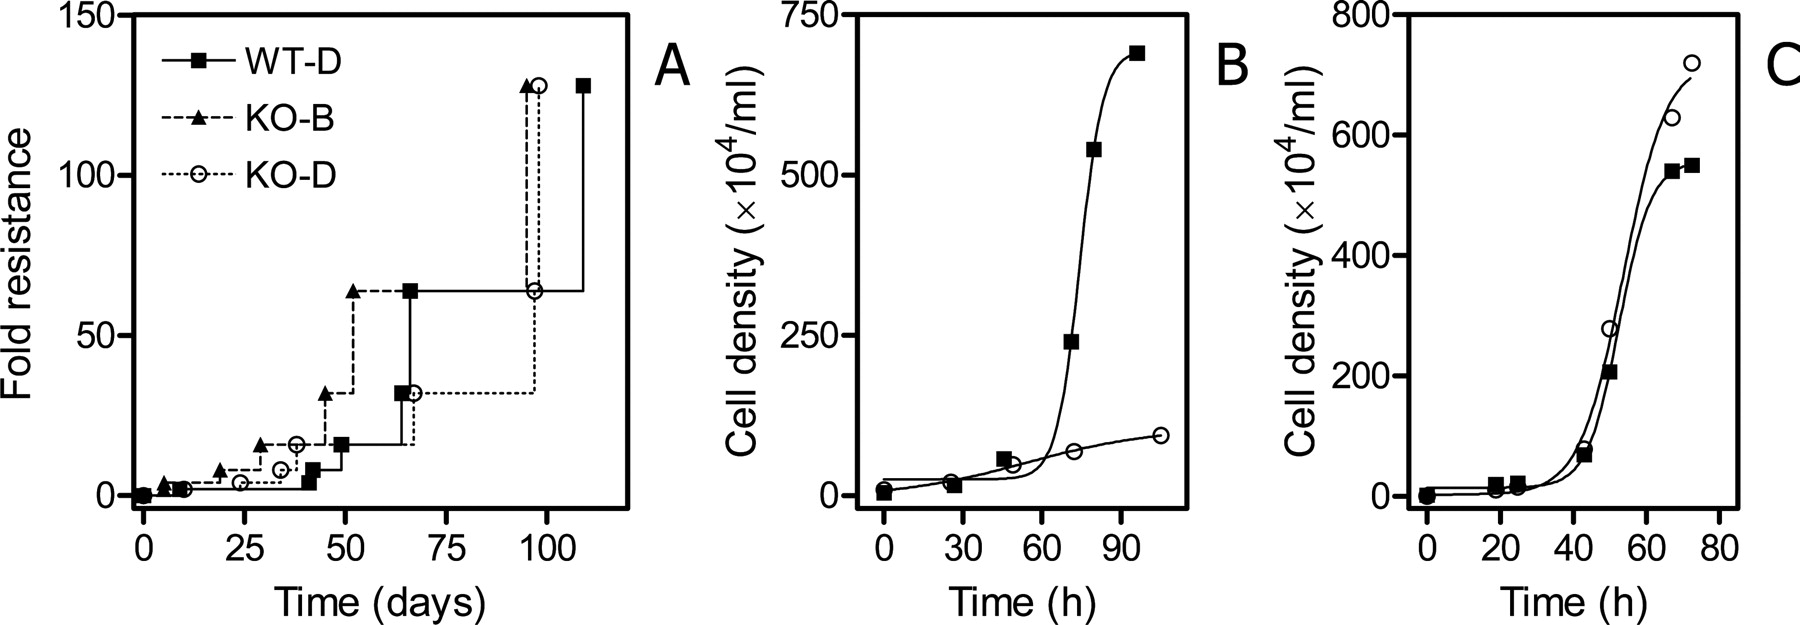 Loss Of The High Affinity Pentamidine Transporter Is